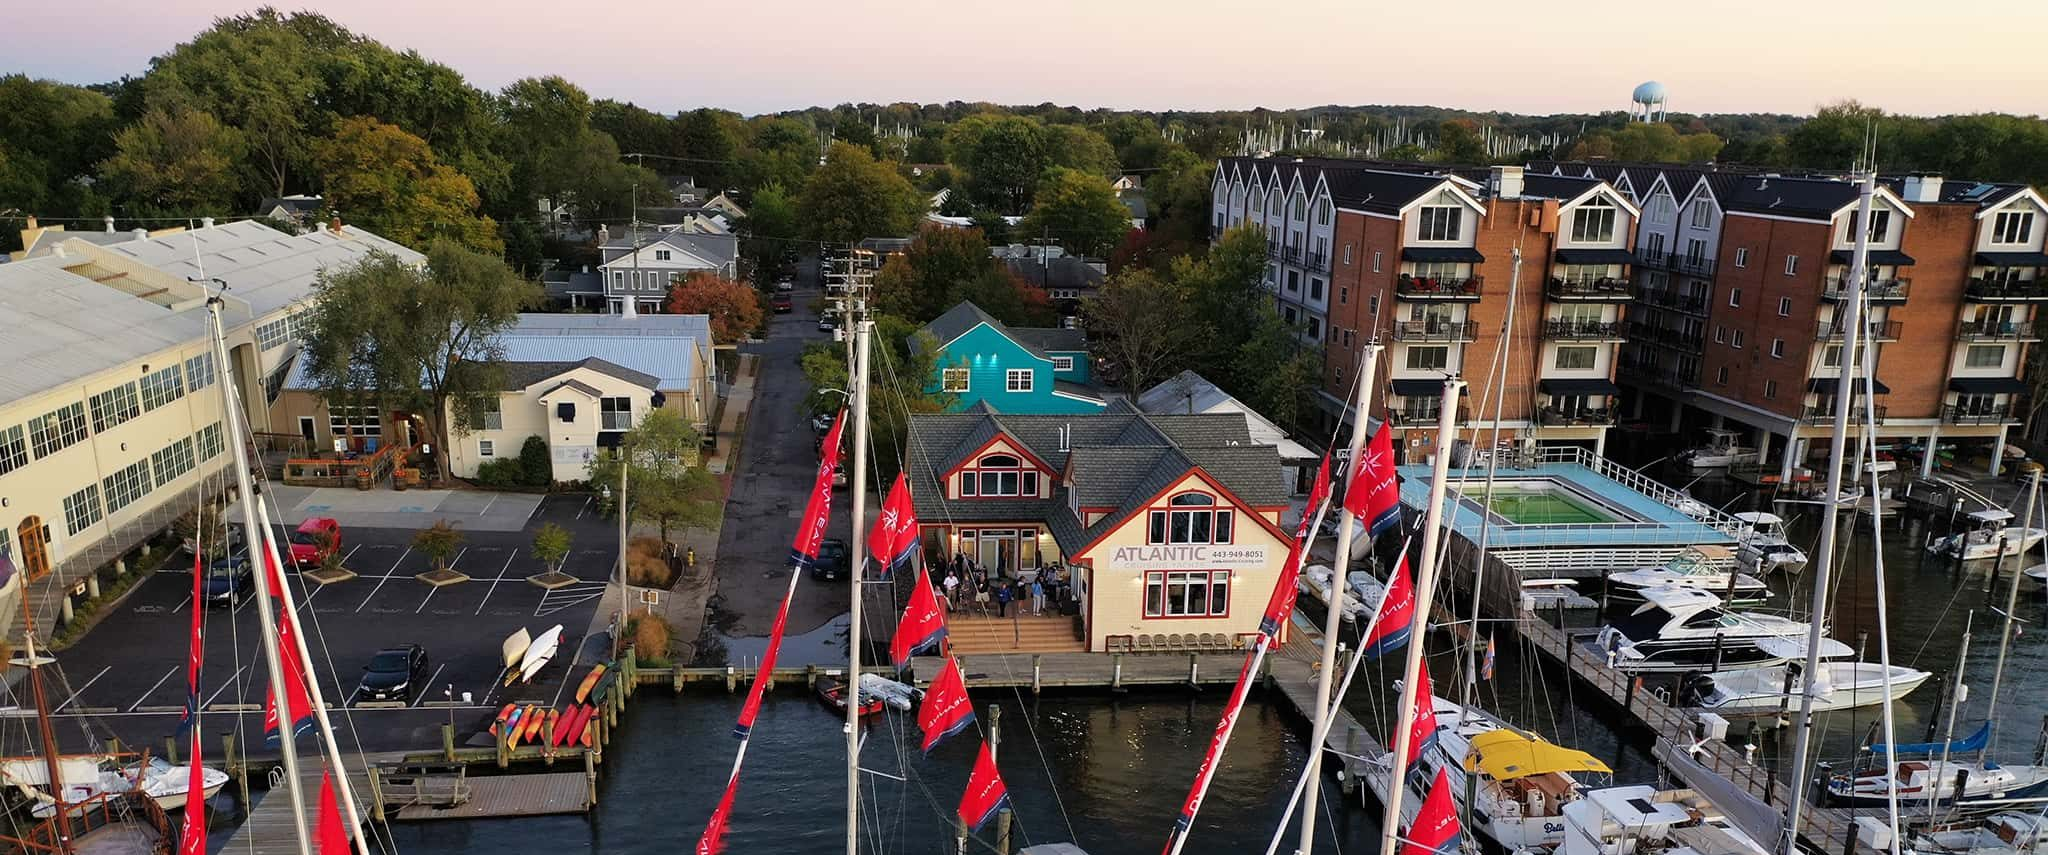 Aerial view of the Atlantic Cruising Yachts Annapolis, MD location